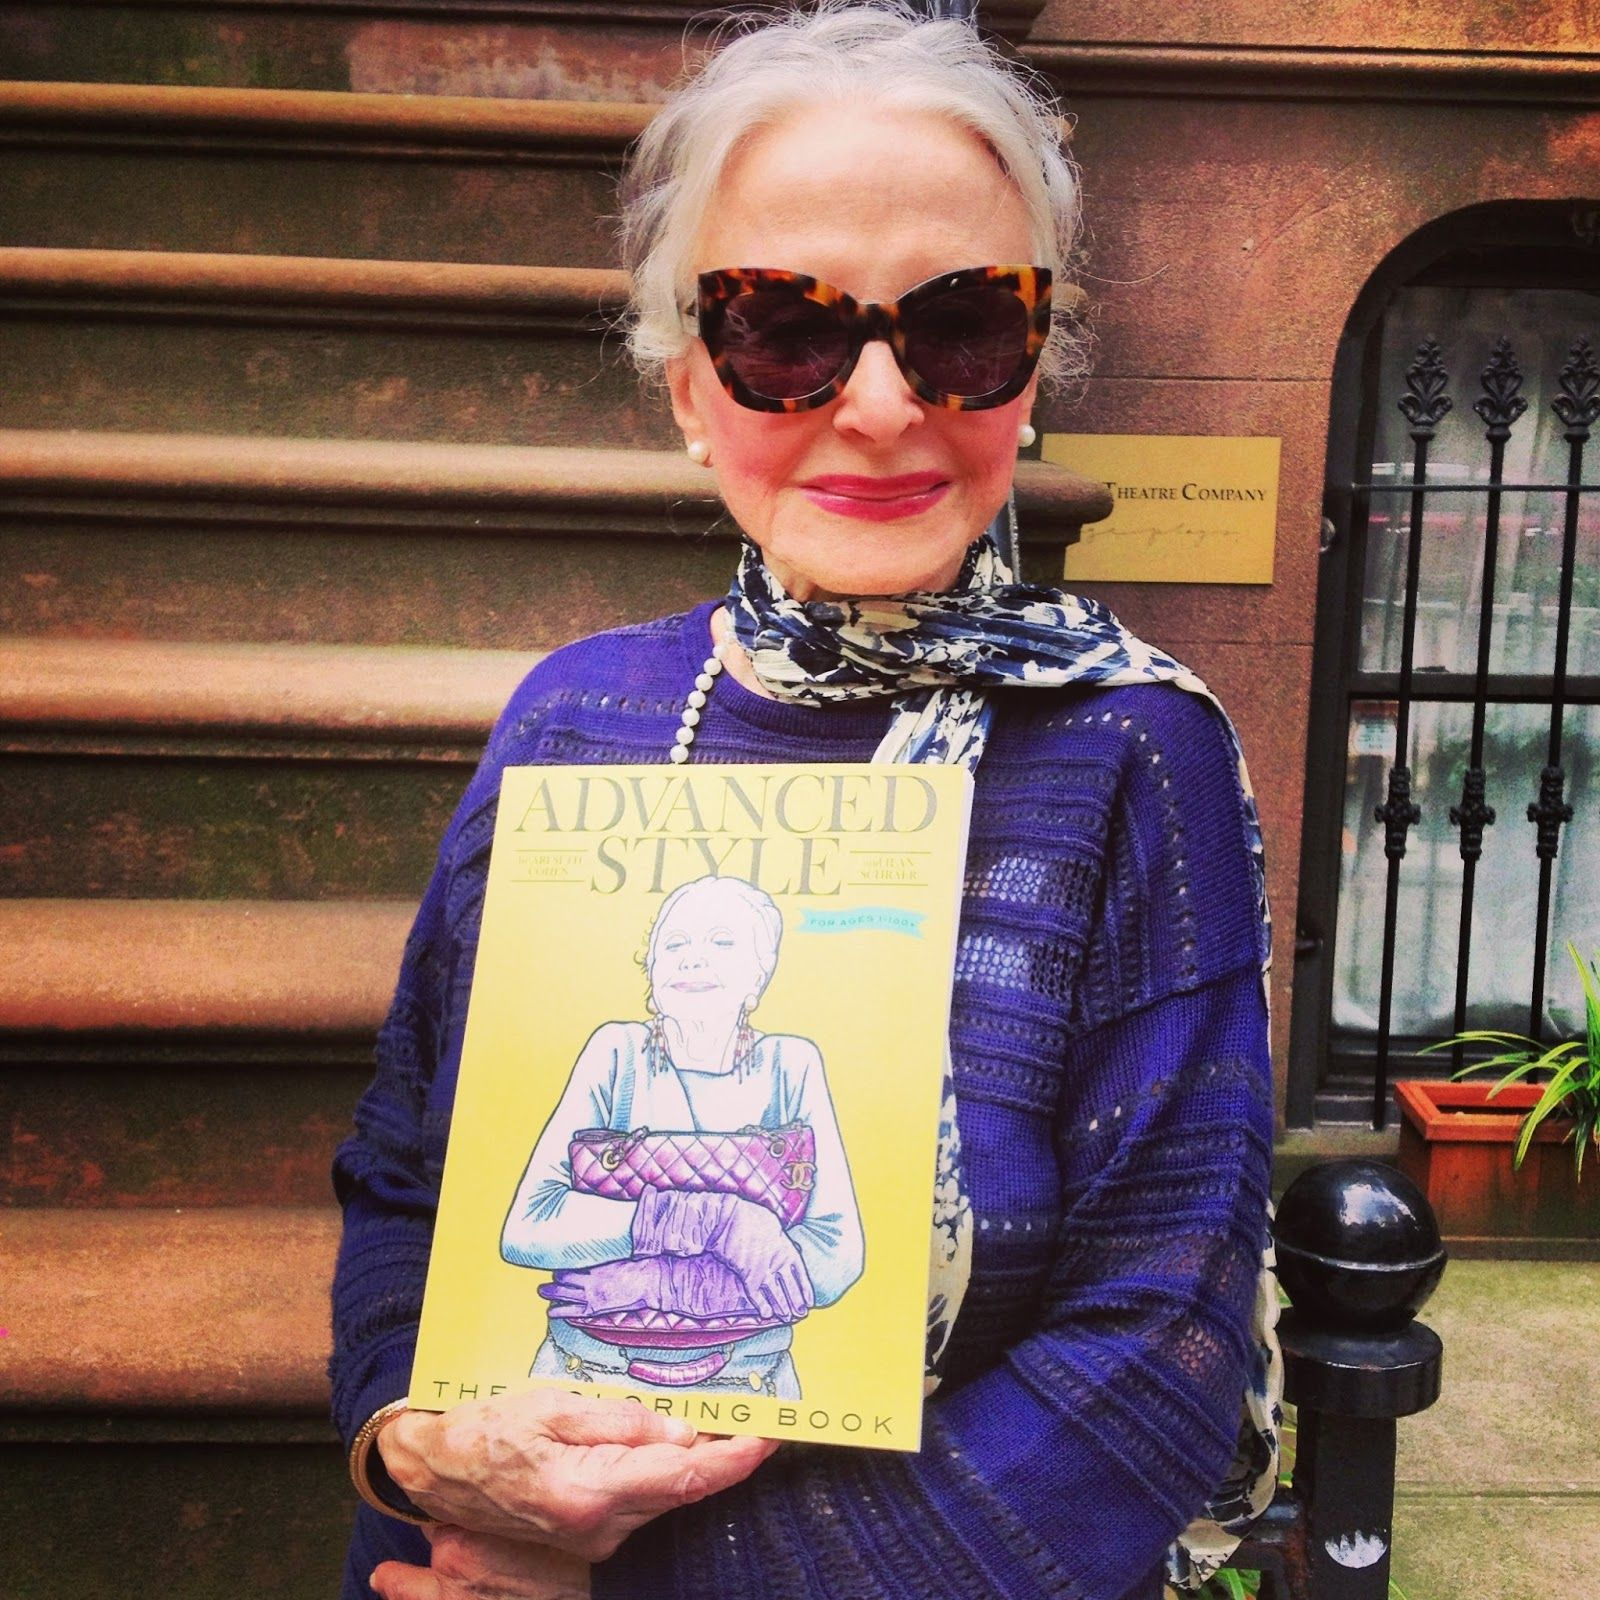 ADVANCED STYLE: Joyce Carpati, The 80-year-old Cover Star of The ...